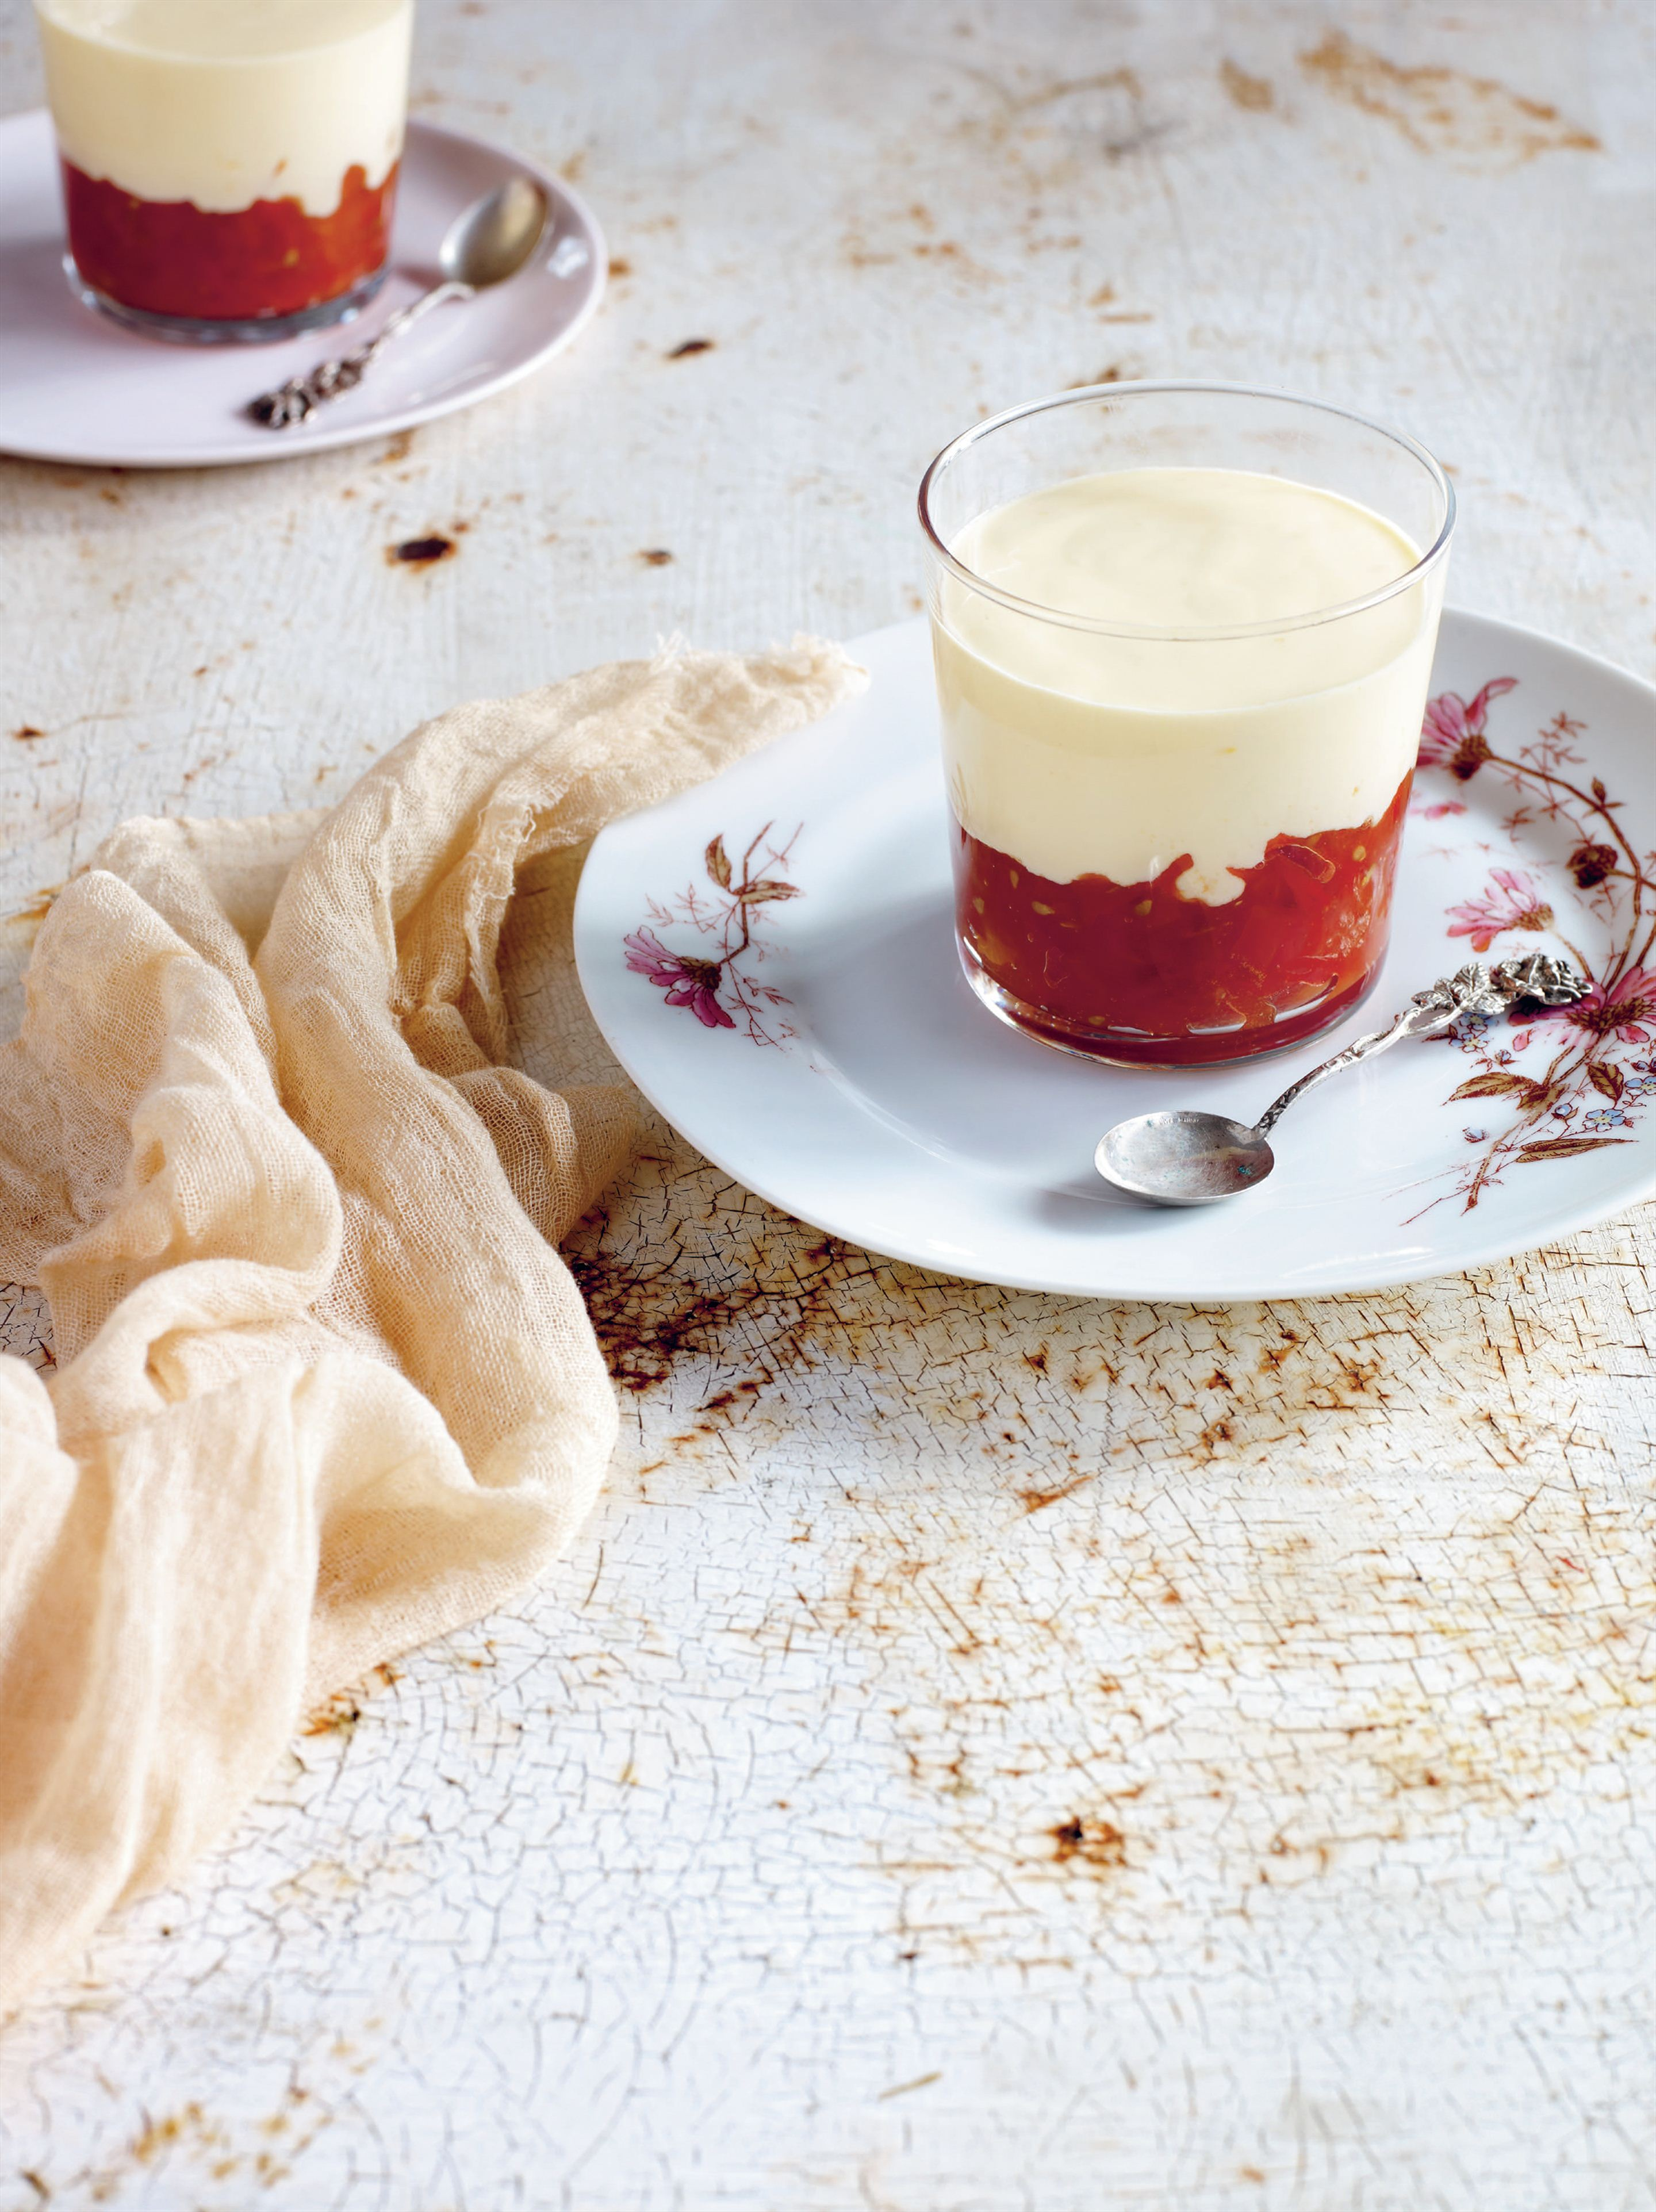 Baked saffron yoghurt pudding with tomato compote